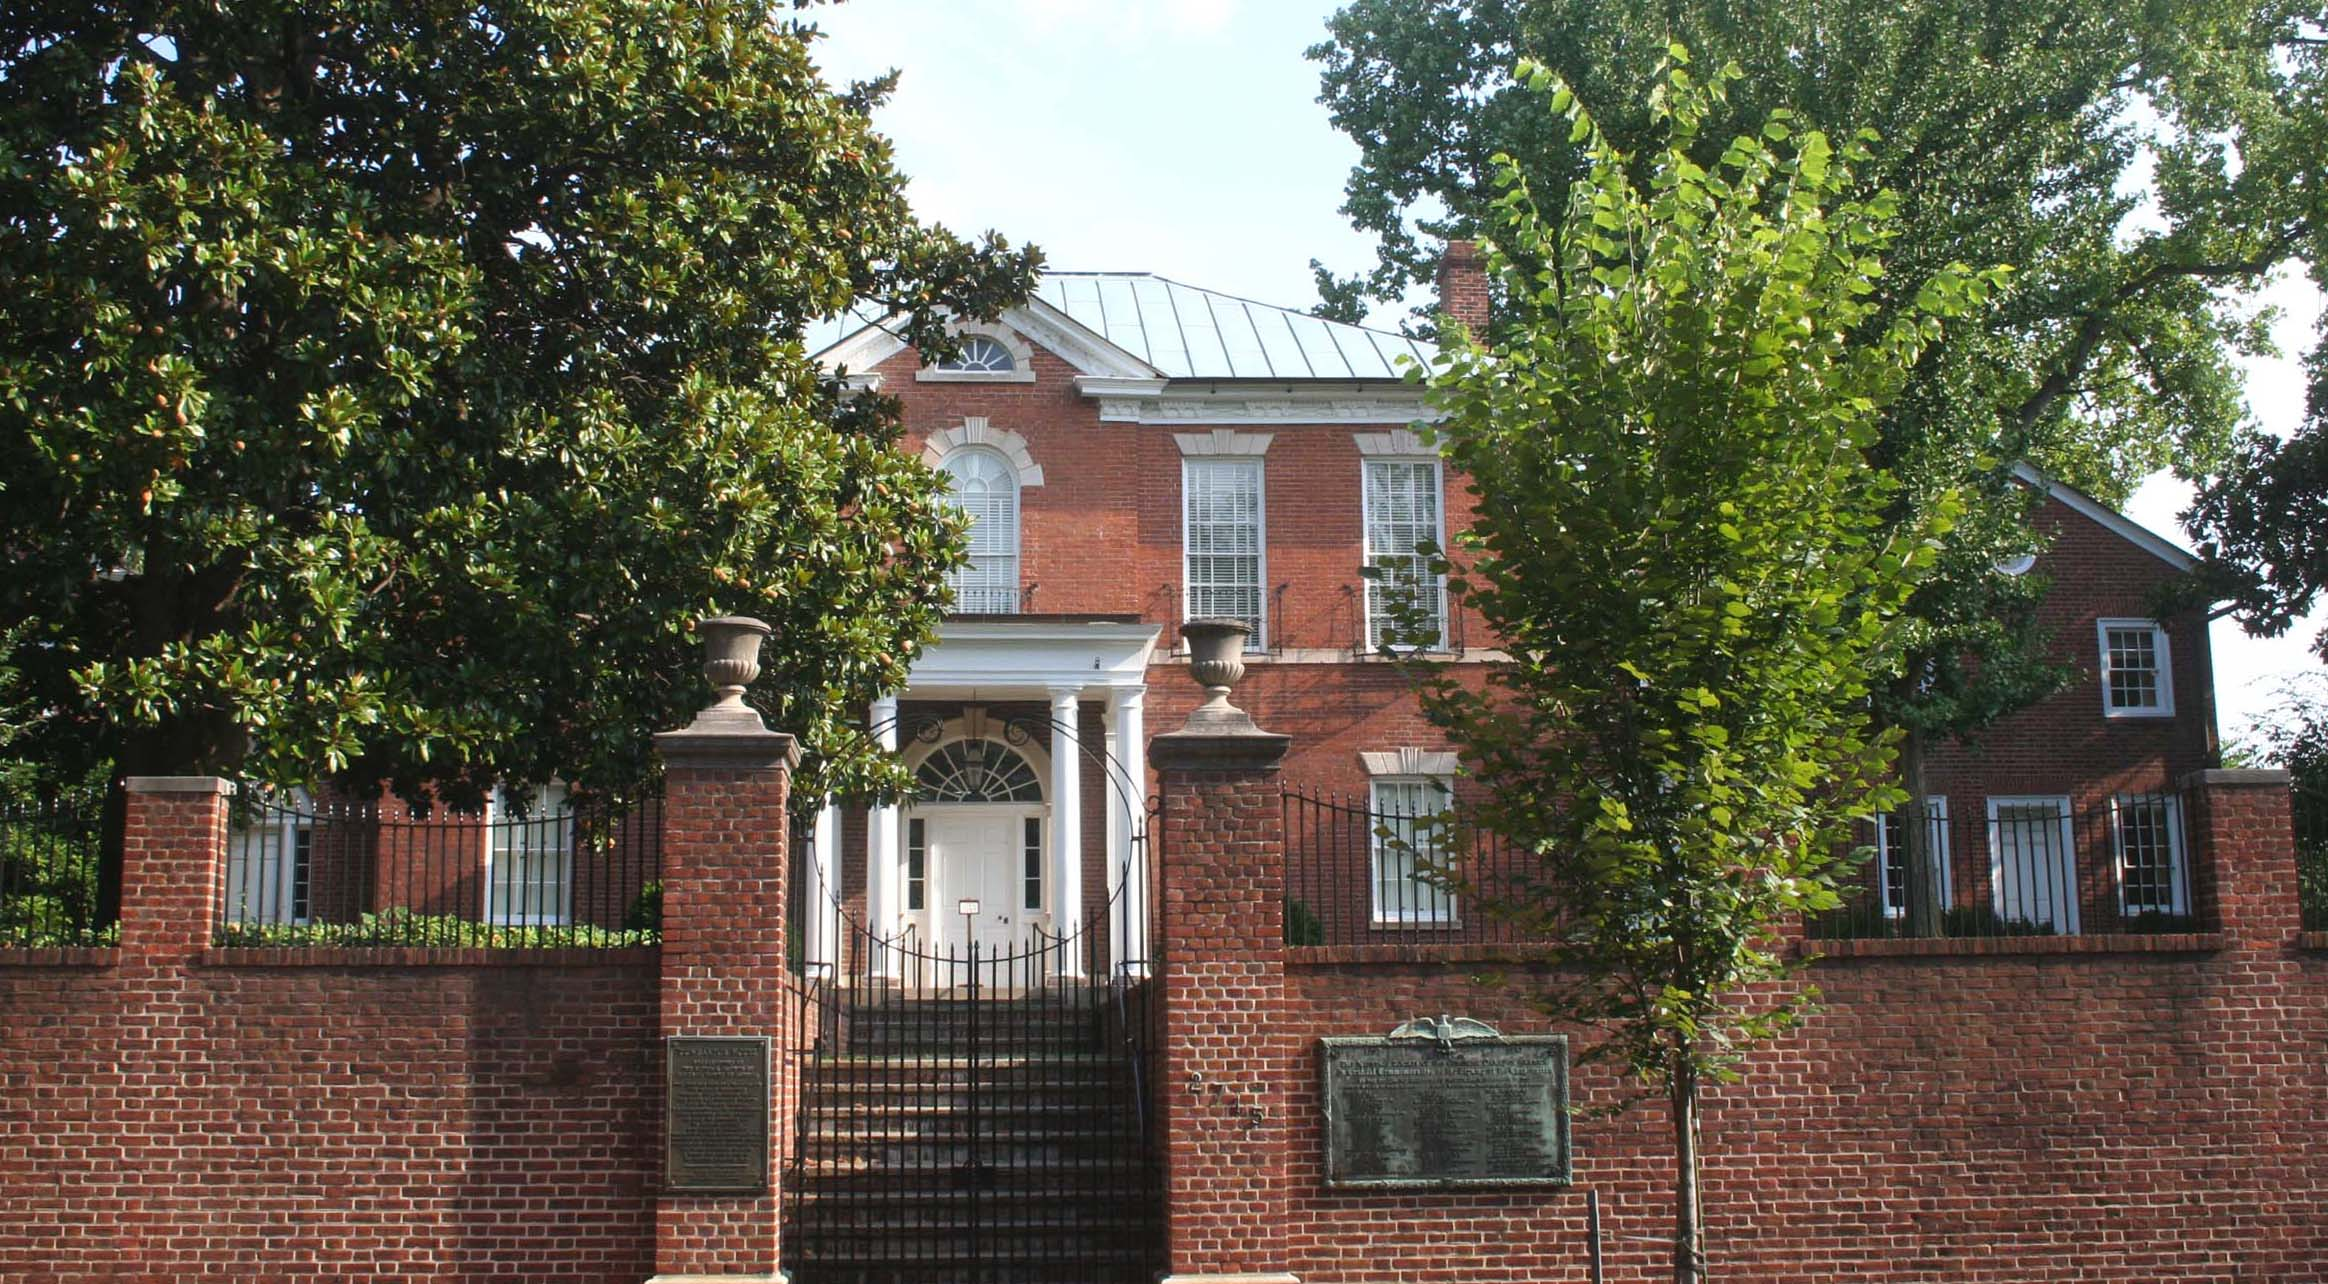 Dumbarton House has undergone numerous preservation projects supported by the NSCDA, to restore the house to its original 1800s appearance.